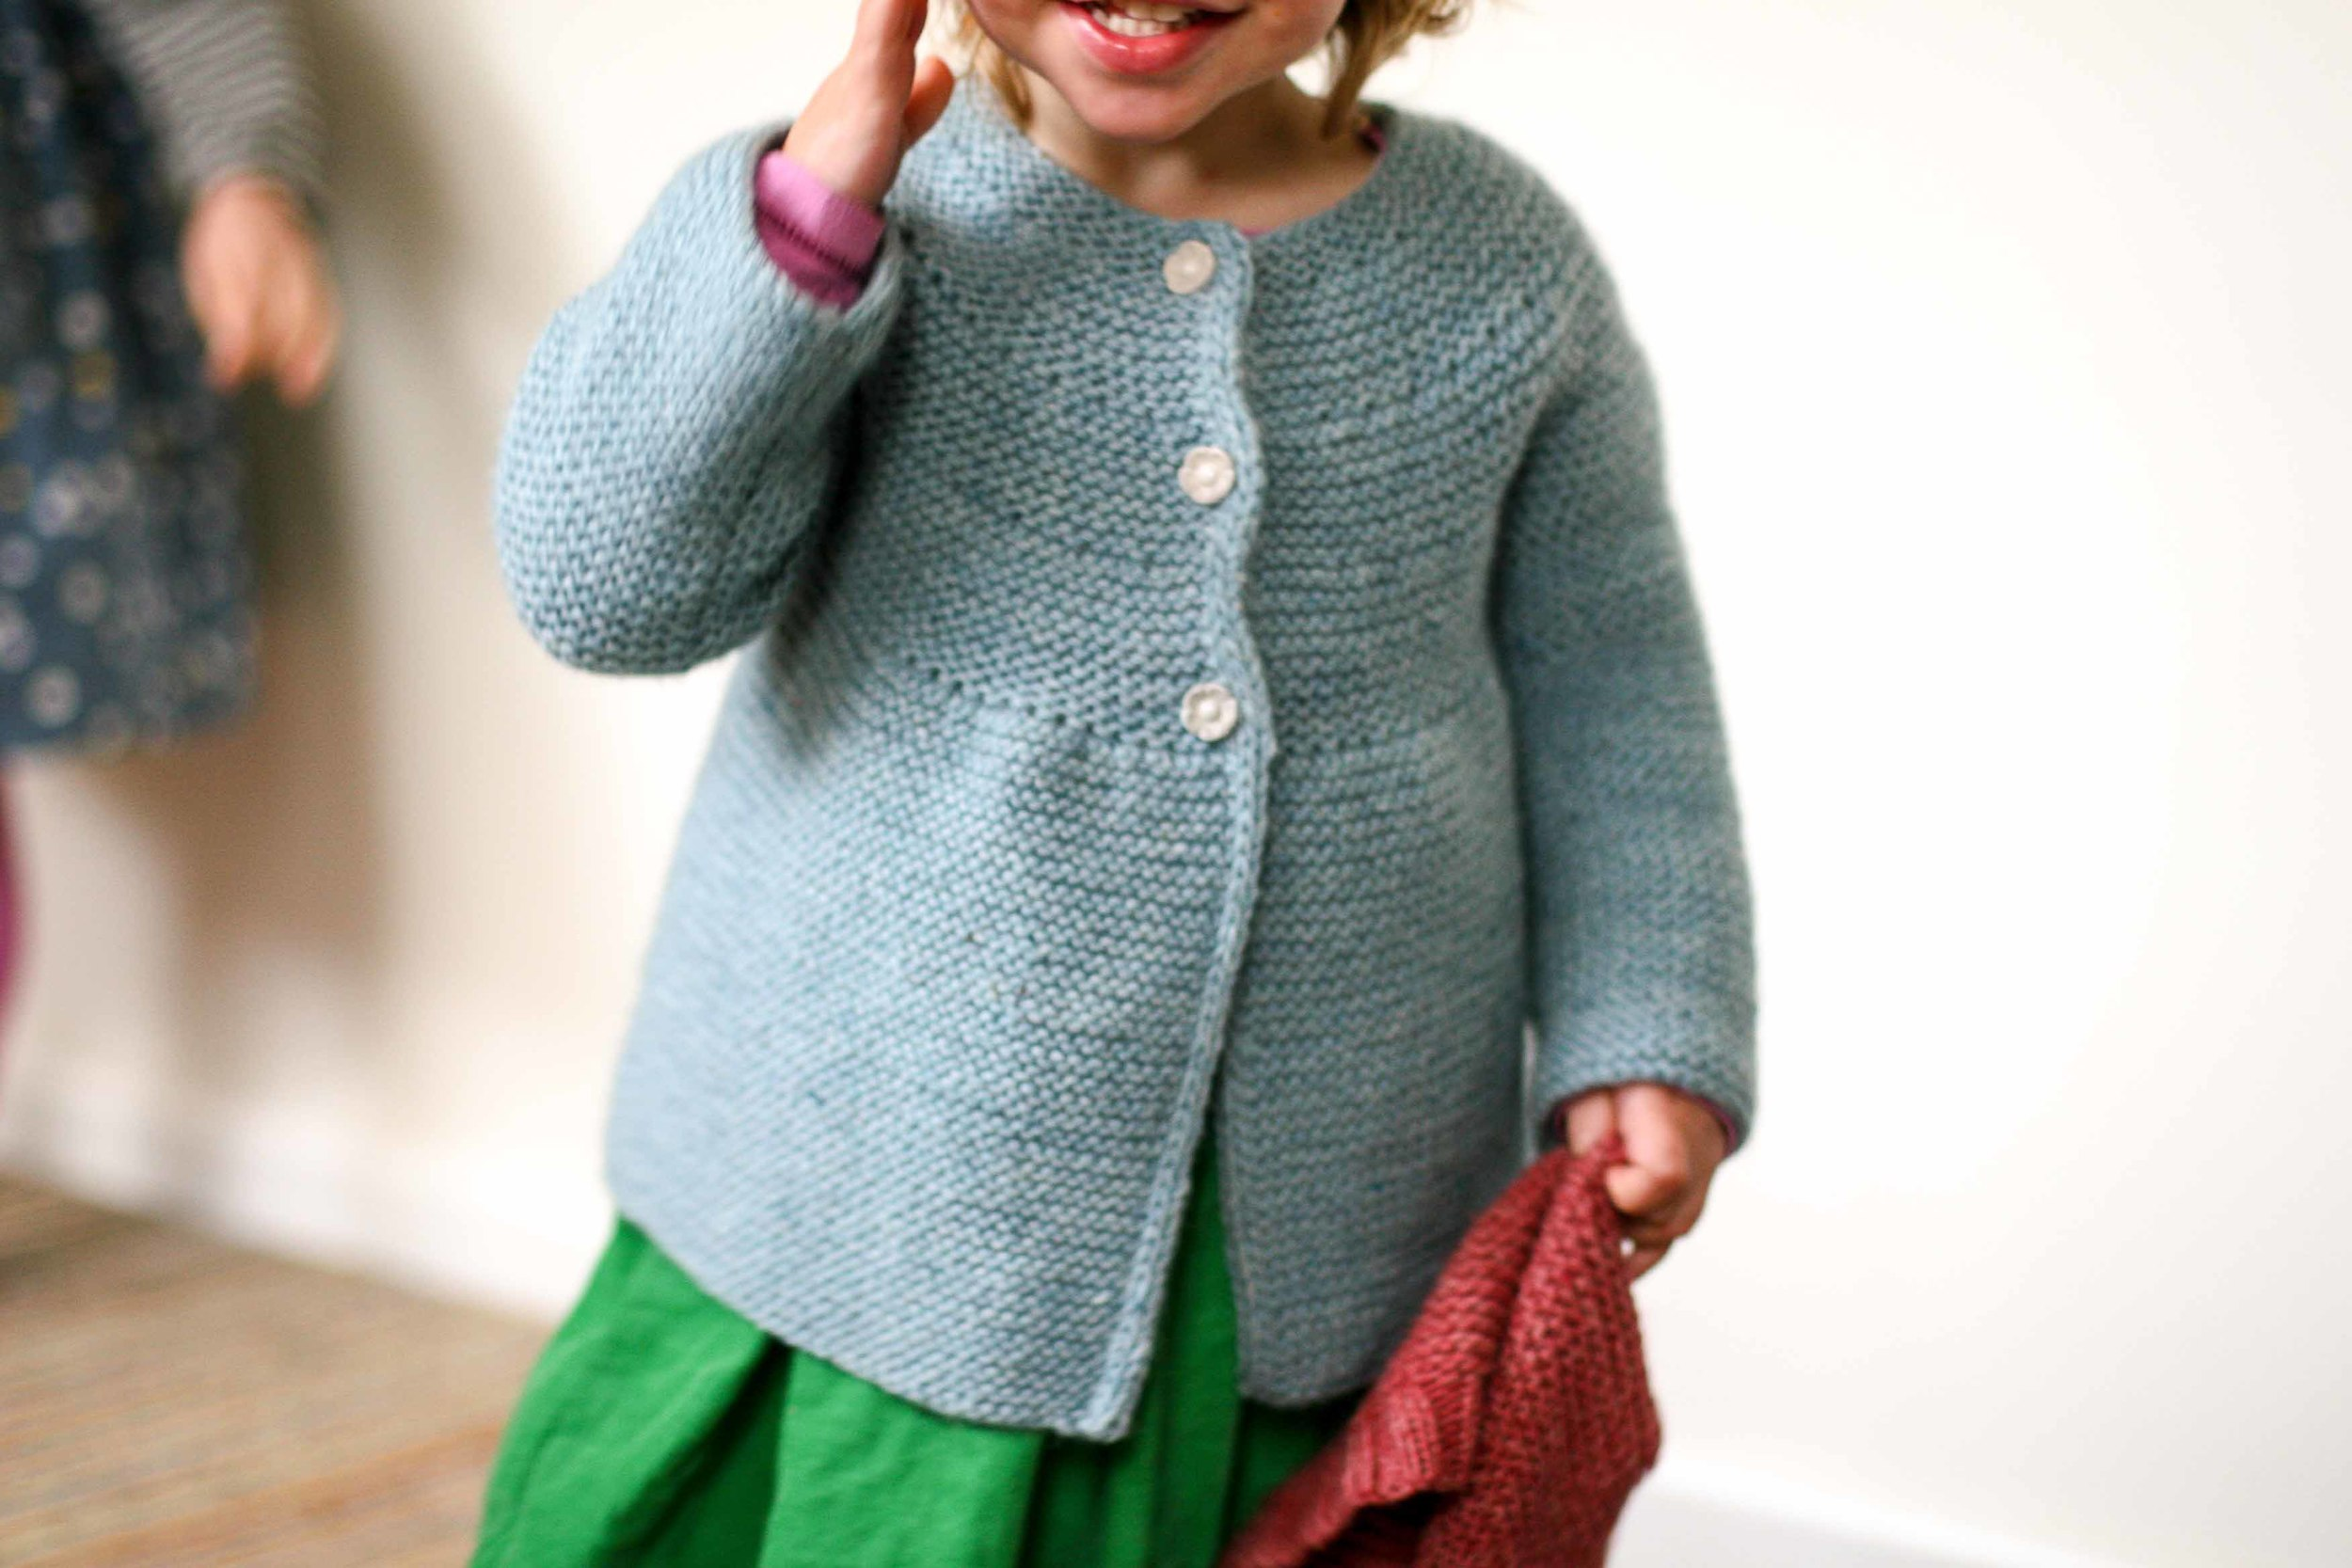 Happiness in handknits